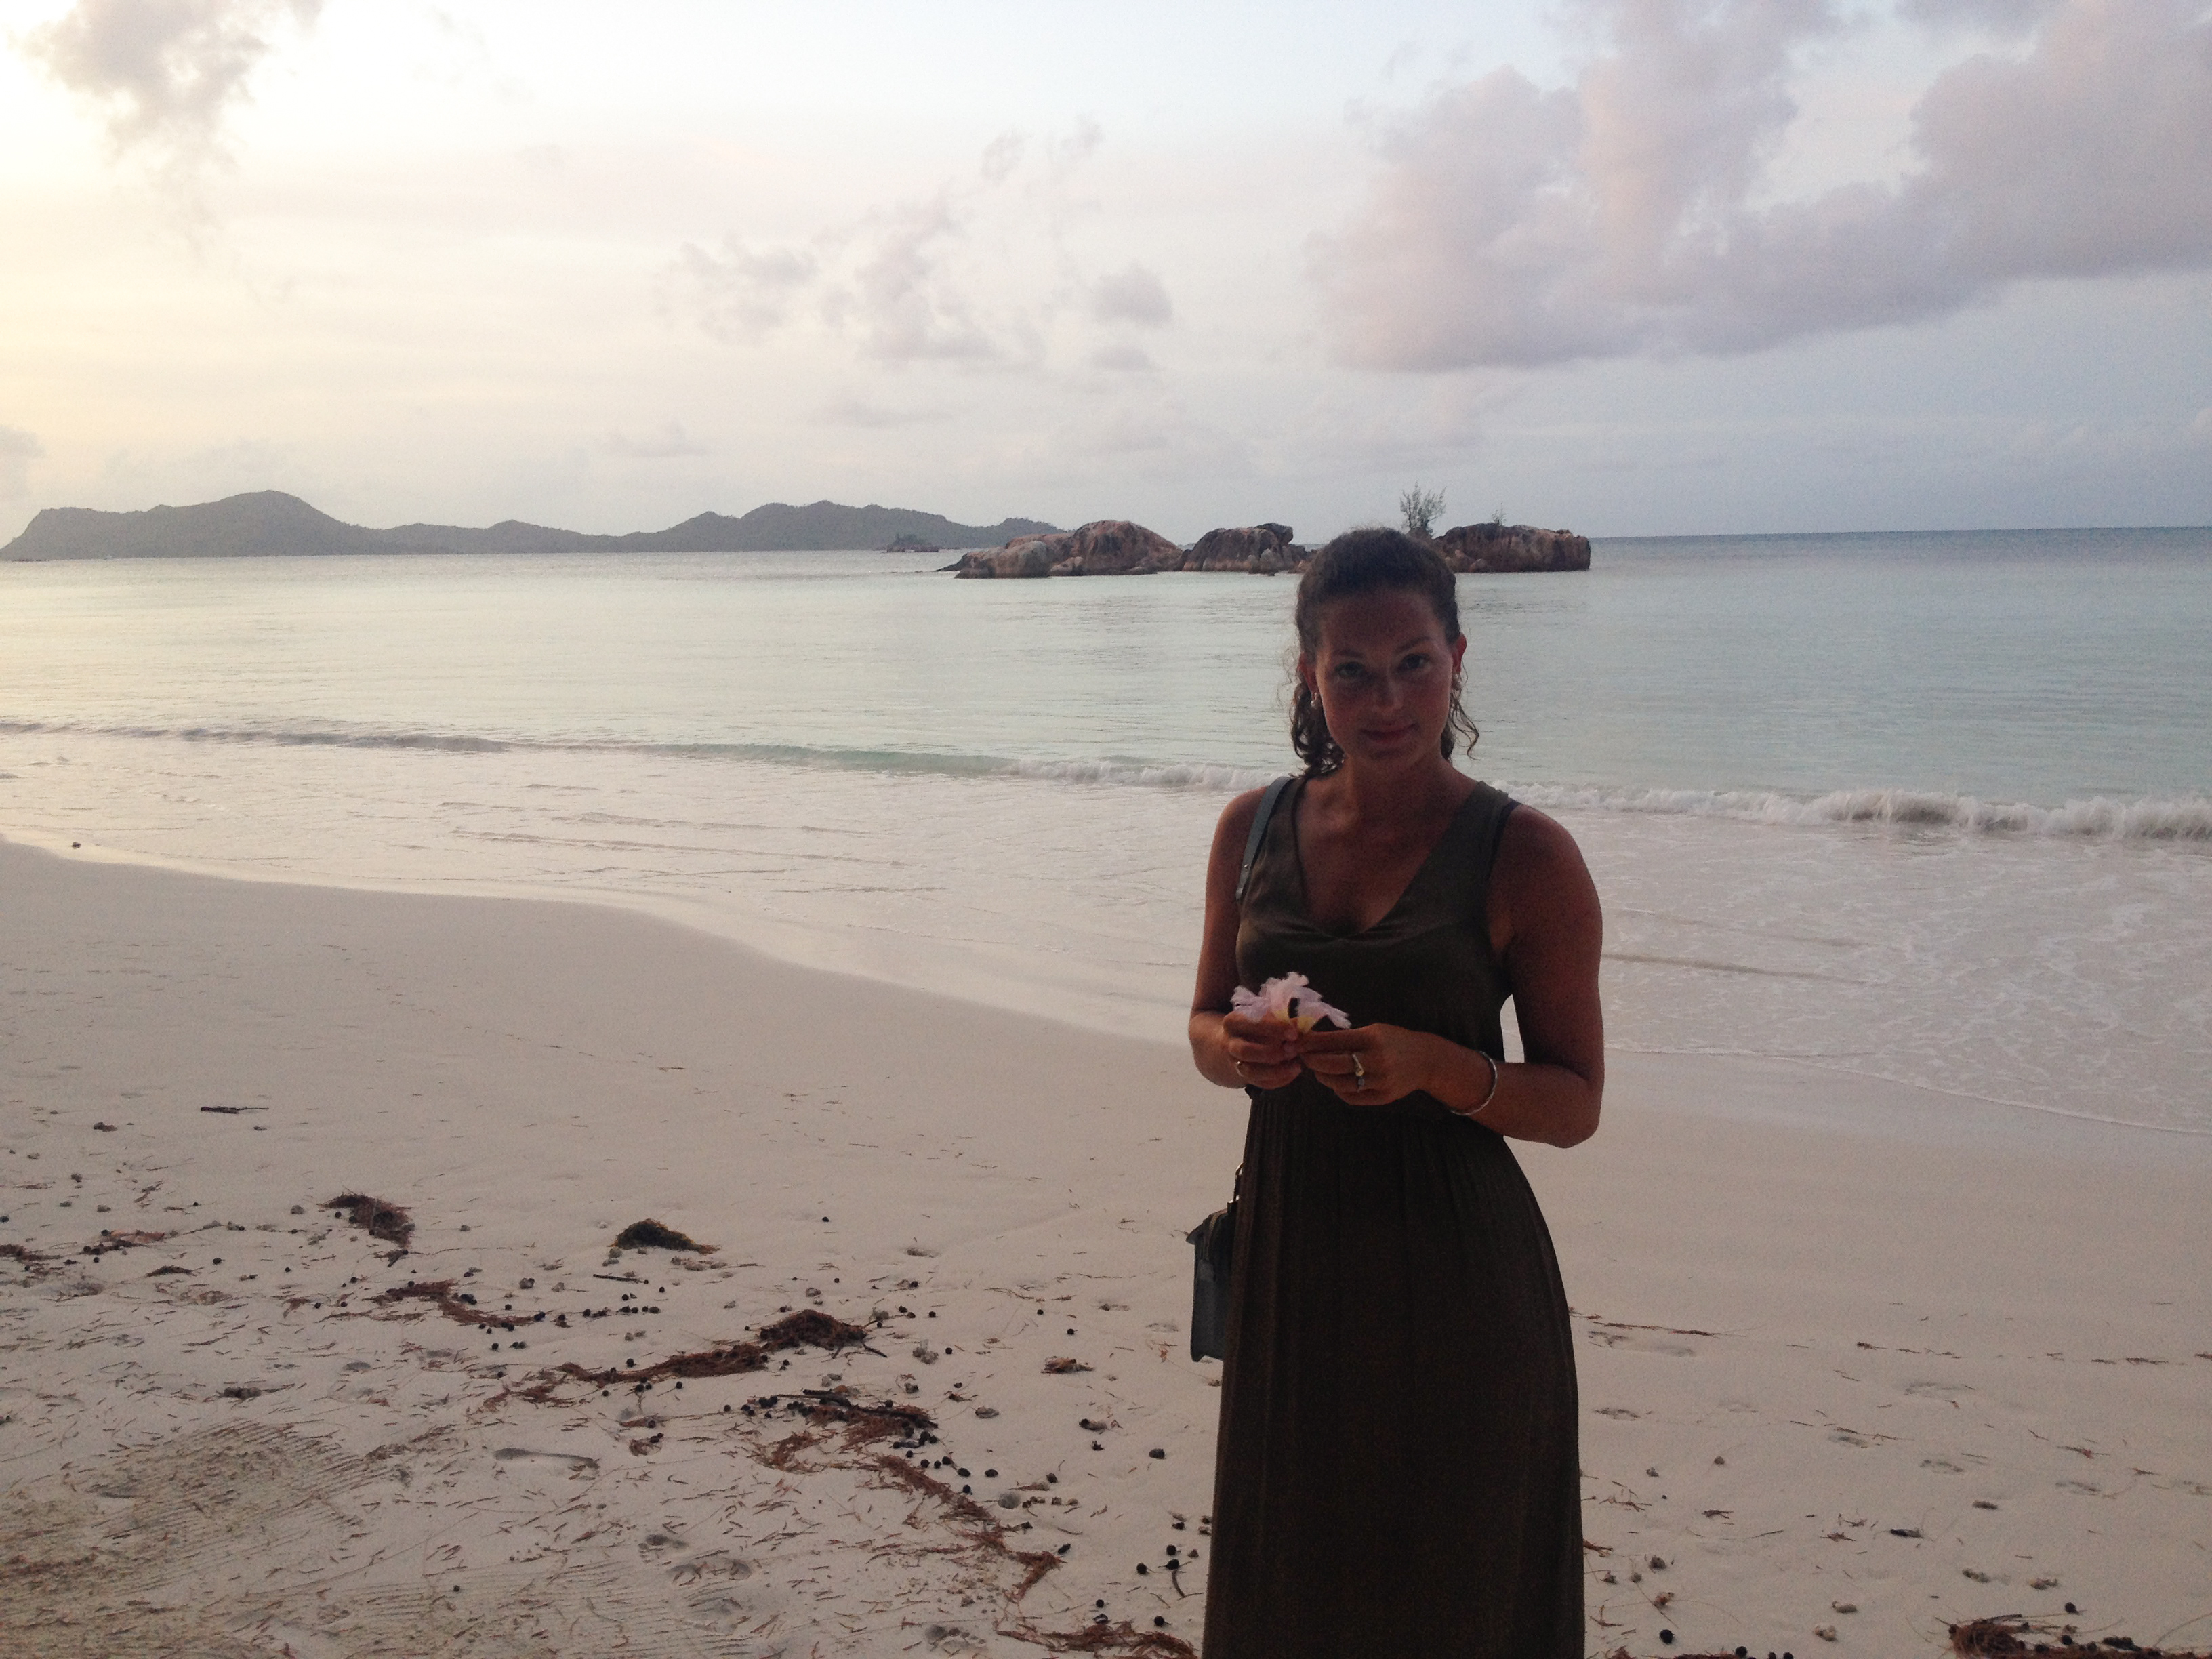 christina-nelson-photography_seychelles-2014_featured-6